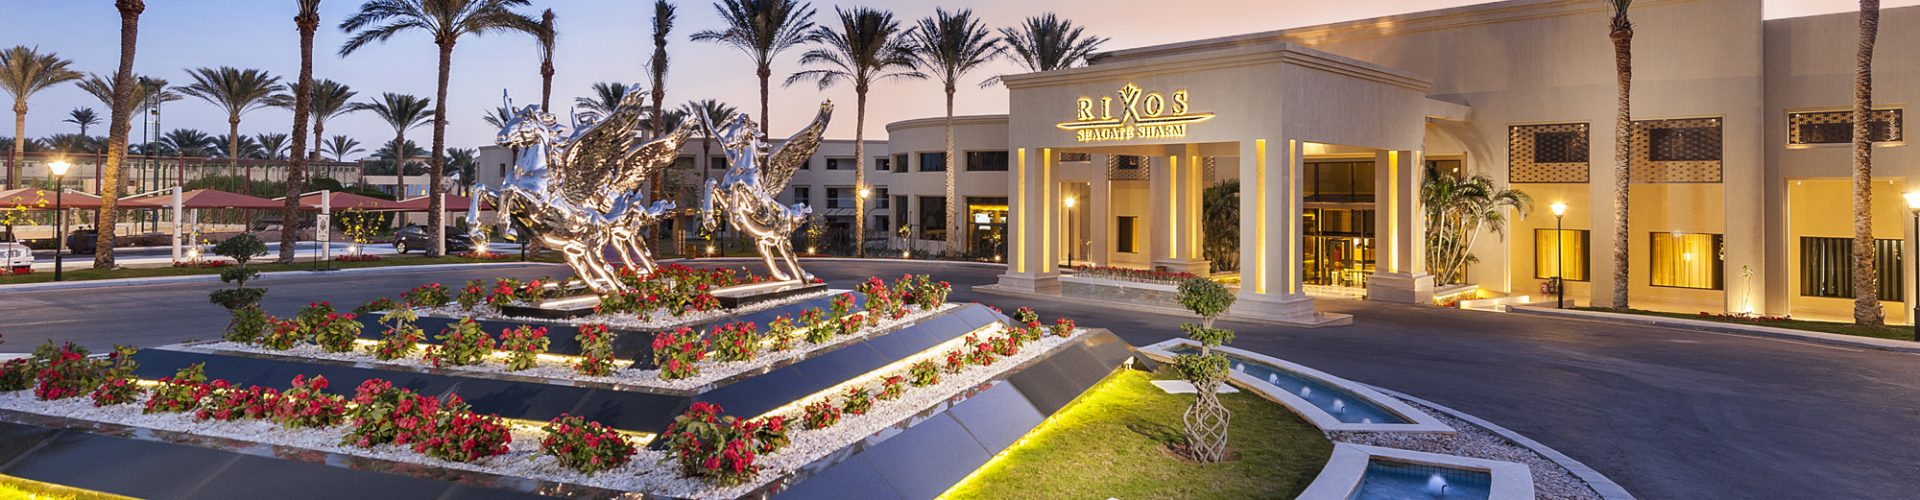 Rixos Seagate Sharm Egypt Holidaycheck Tripadvisor The Best Ultra All inclusive Luxury Outstanding Extraordinary Pool Beach Privacy Rixos Seagate Sharm Egypt Holidaycheck Tripadvisor The Best Ultra All inclusive Palms Sea Red Sea Luxury Hotel Rixos Seagate Sharm SPA Room Bar All Inclusive Ultra Turkish Egypt Sharm El Sheikh Animation